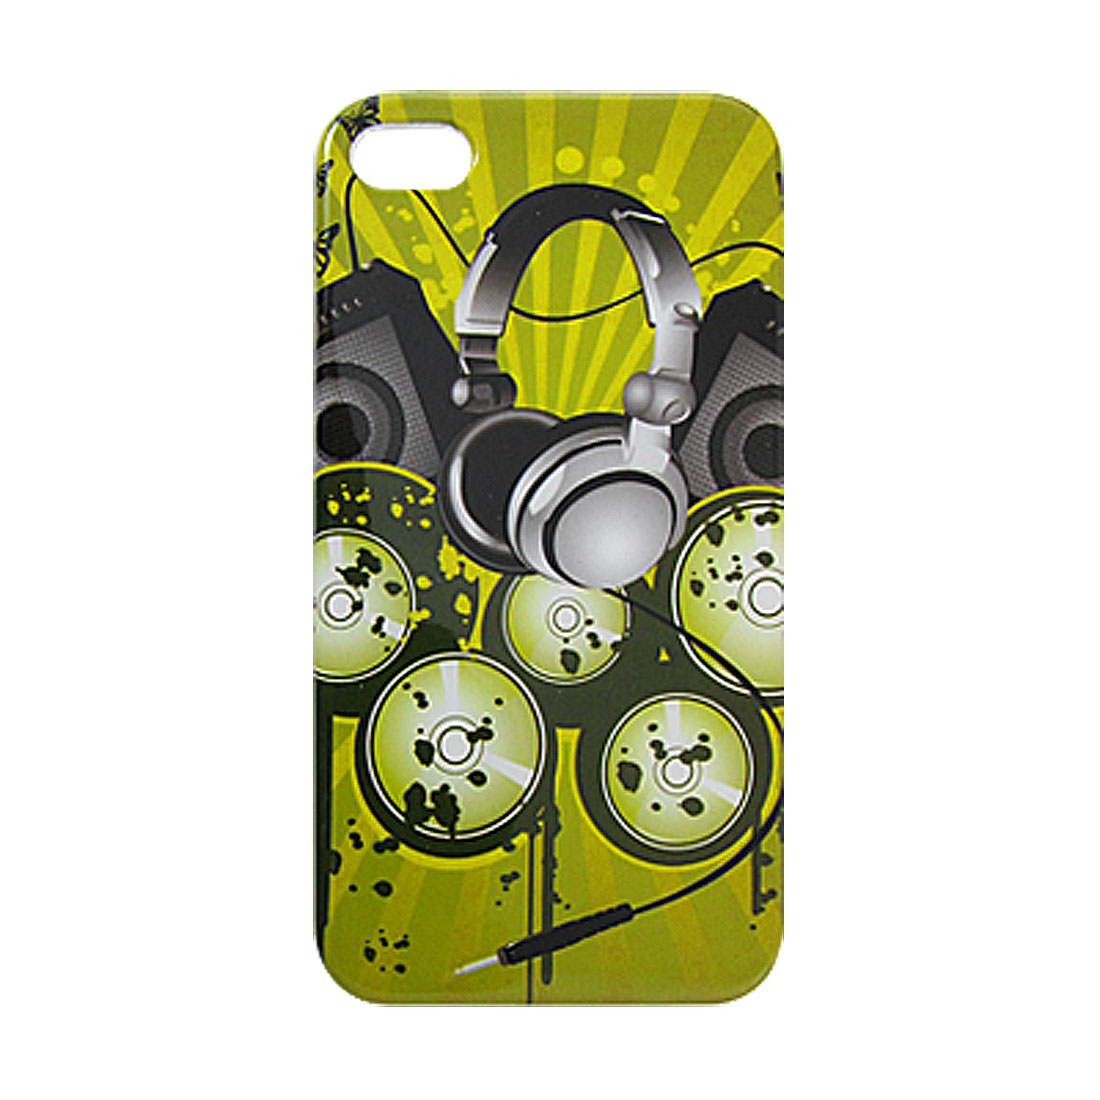 Headphone Speaker Box Pattern IMD Back Case Cover Protector for iPhone 4 4G 4S